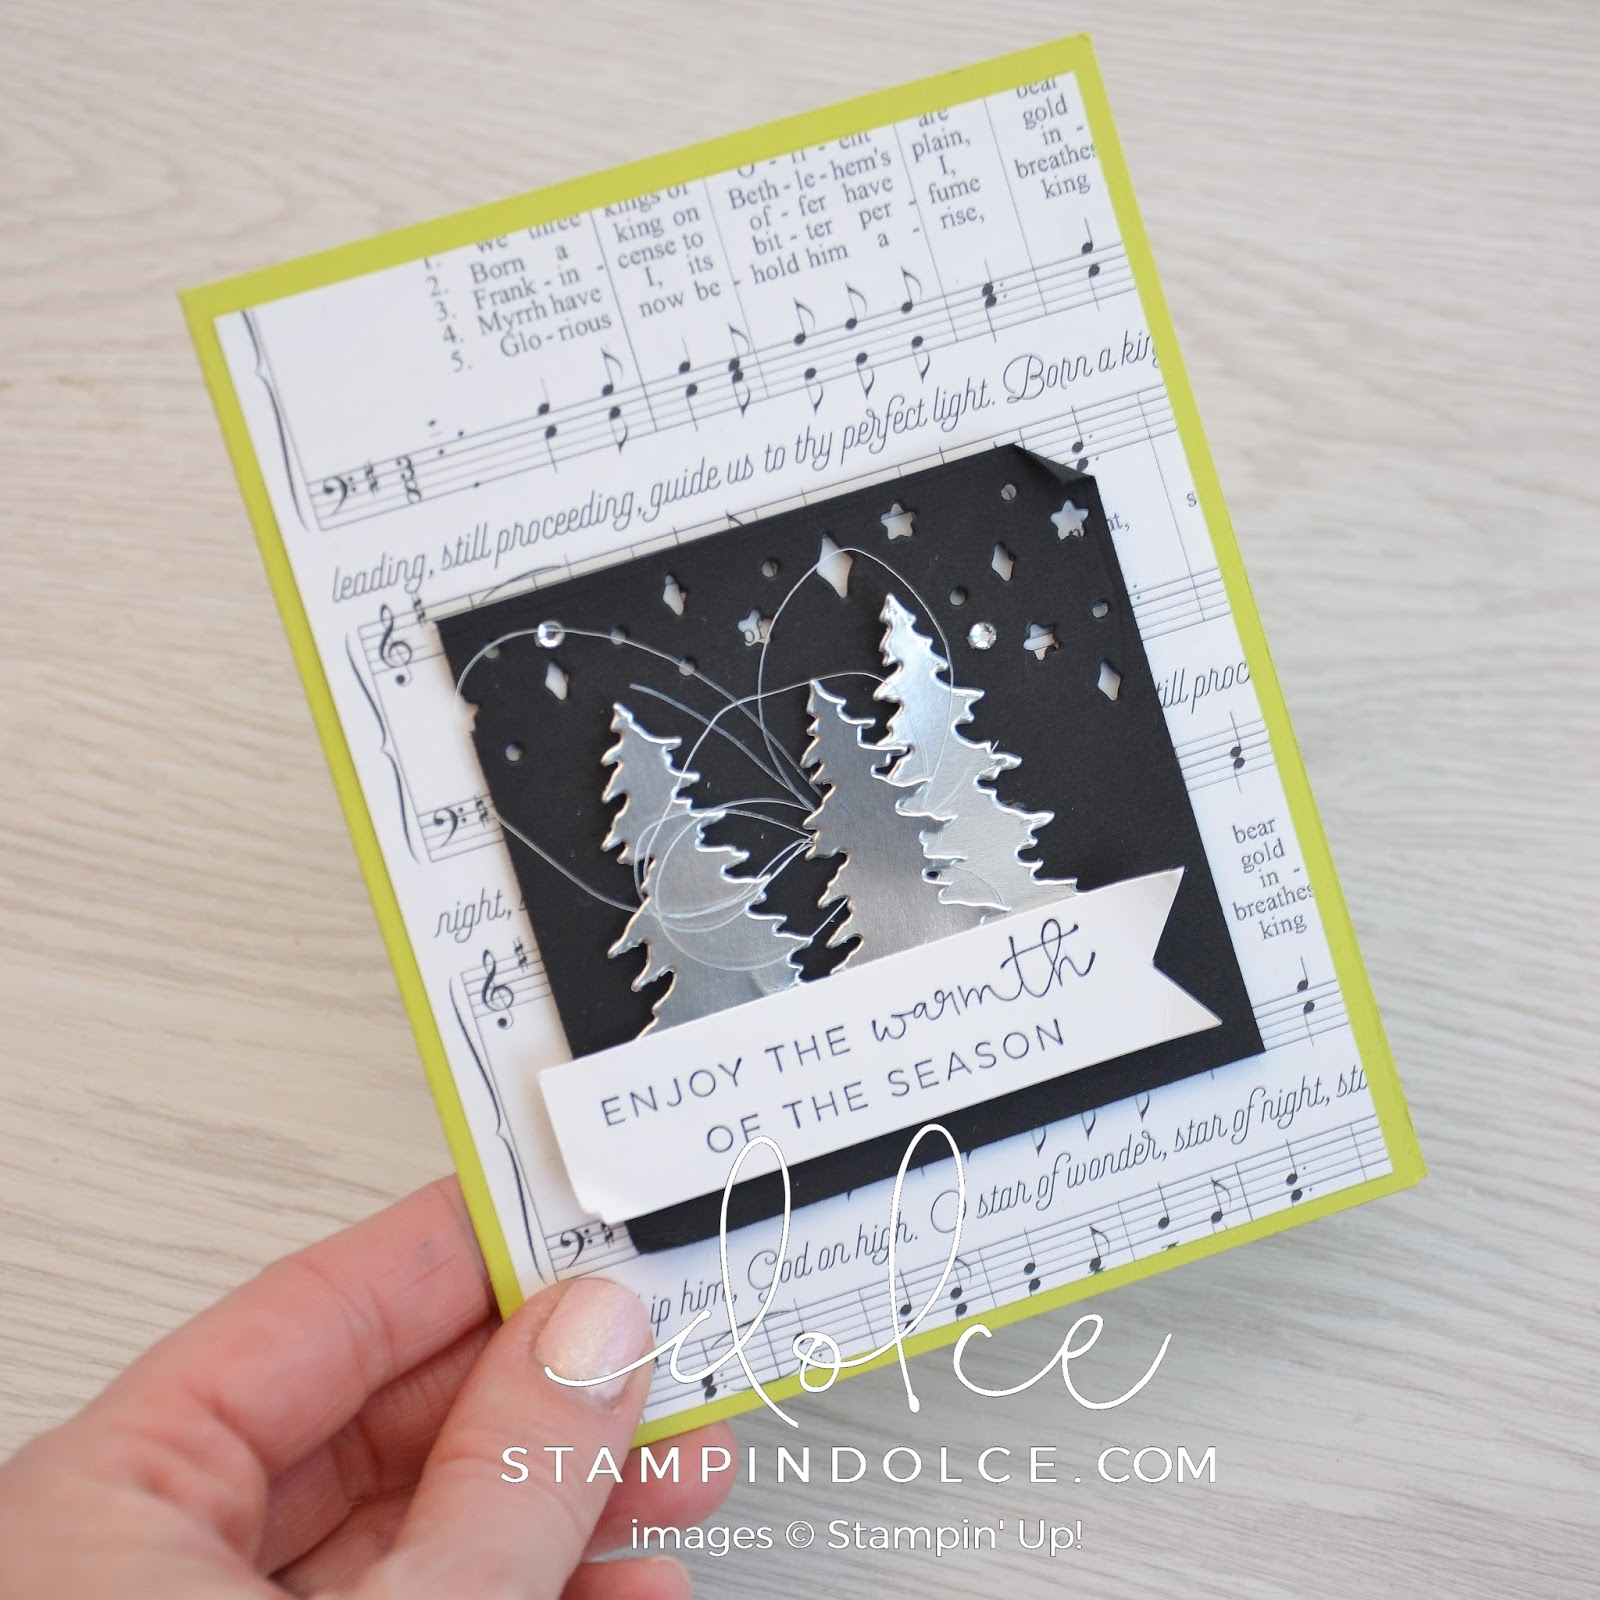 Stampin Dolce Cocktails Amp Christmas Cards 2017